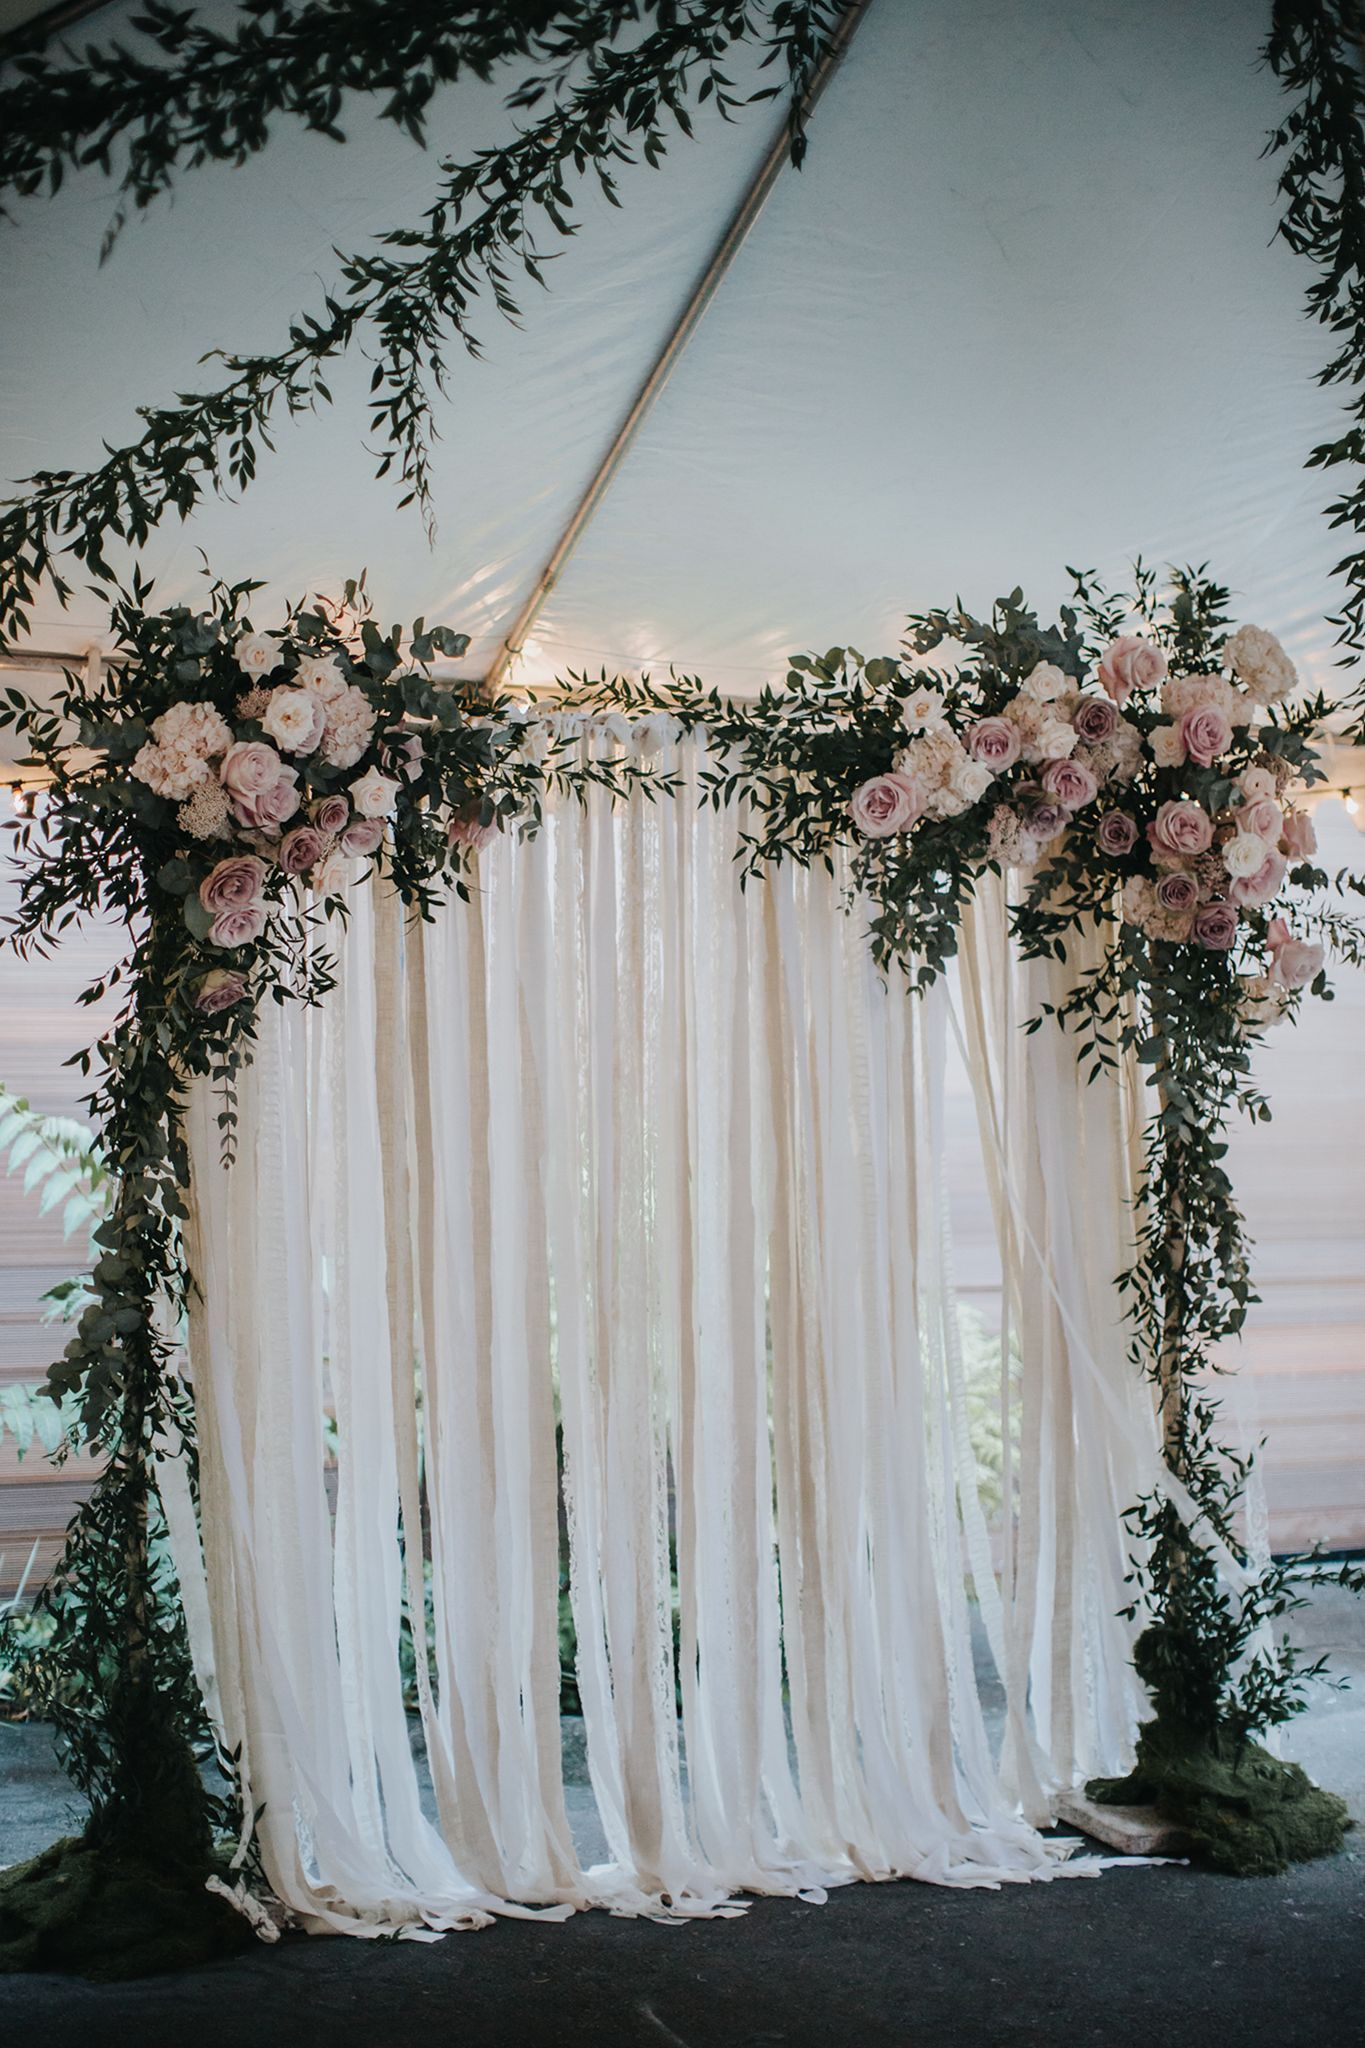 45 easy make wedding backdrop ideas that you can make it self great 45 easy make wedding backdrop ideas that you can make it self https junglespirit Gallery